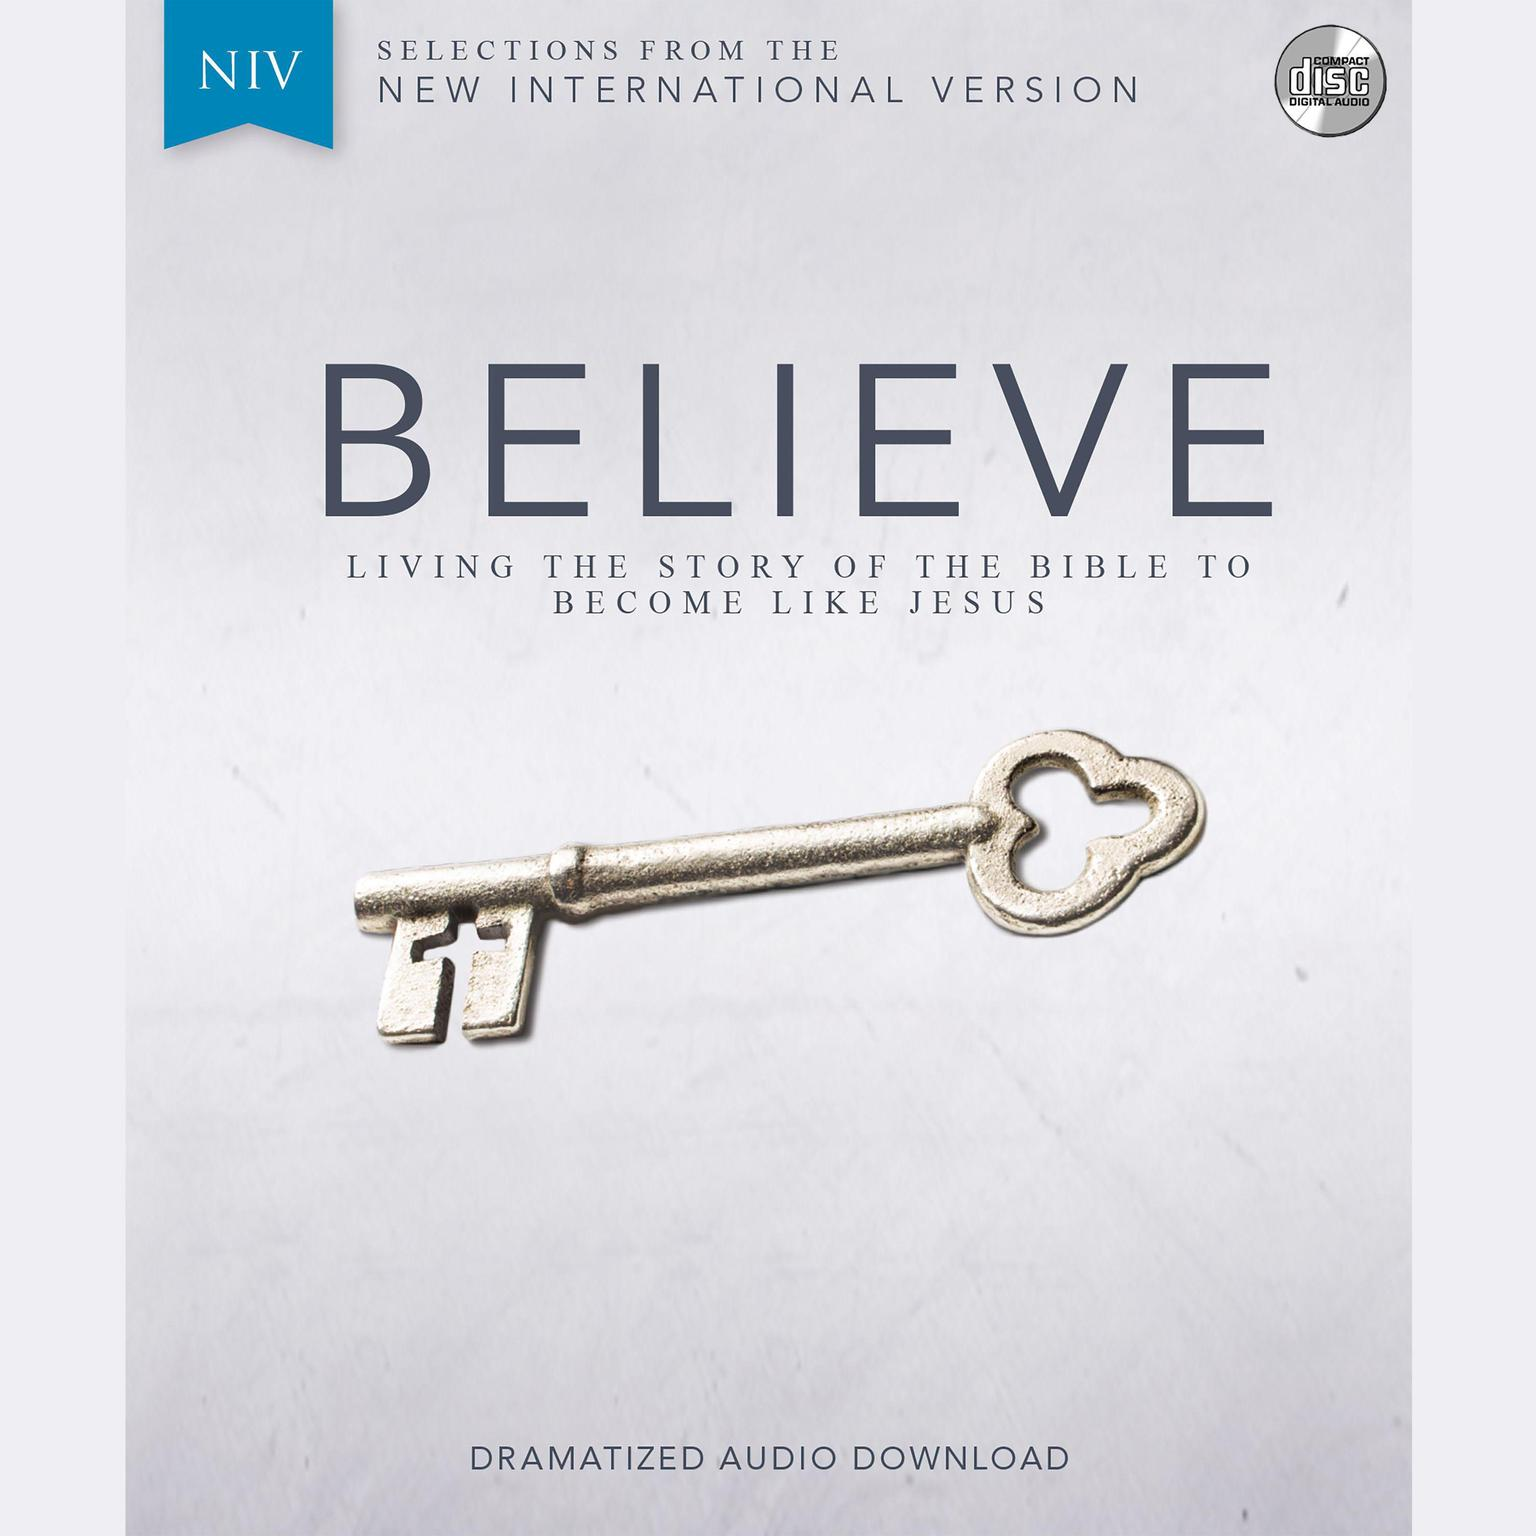 Printable NIV, Believe, Audio Download: Living the Story of the Bible to Become LIke Jesus Audiobook Cover Art